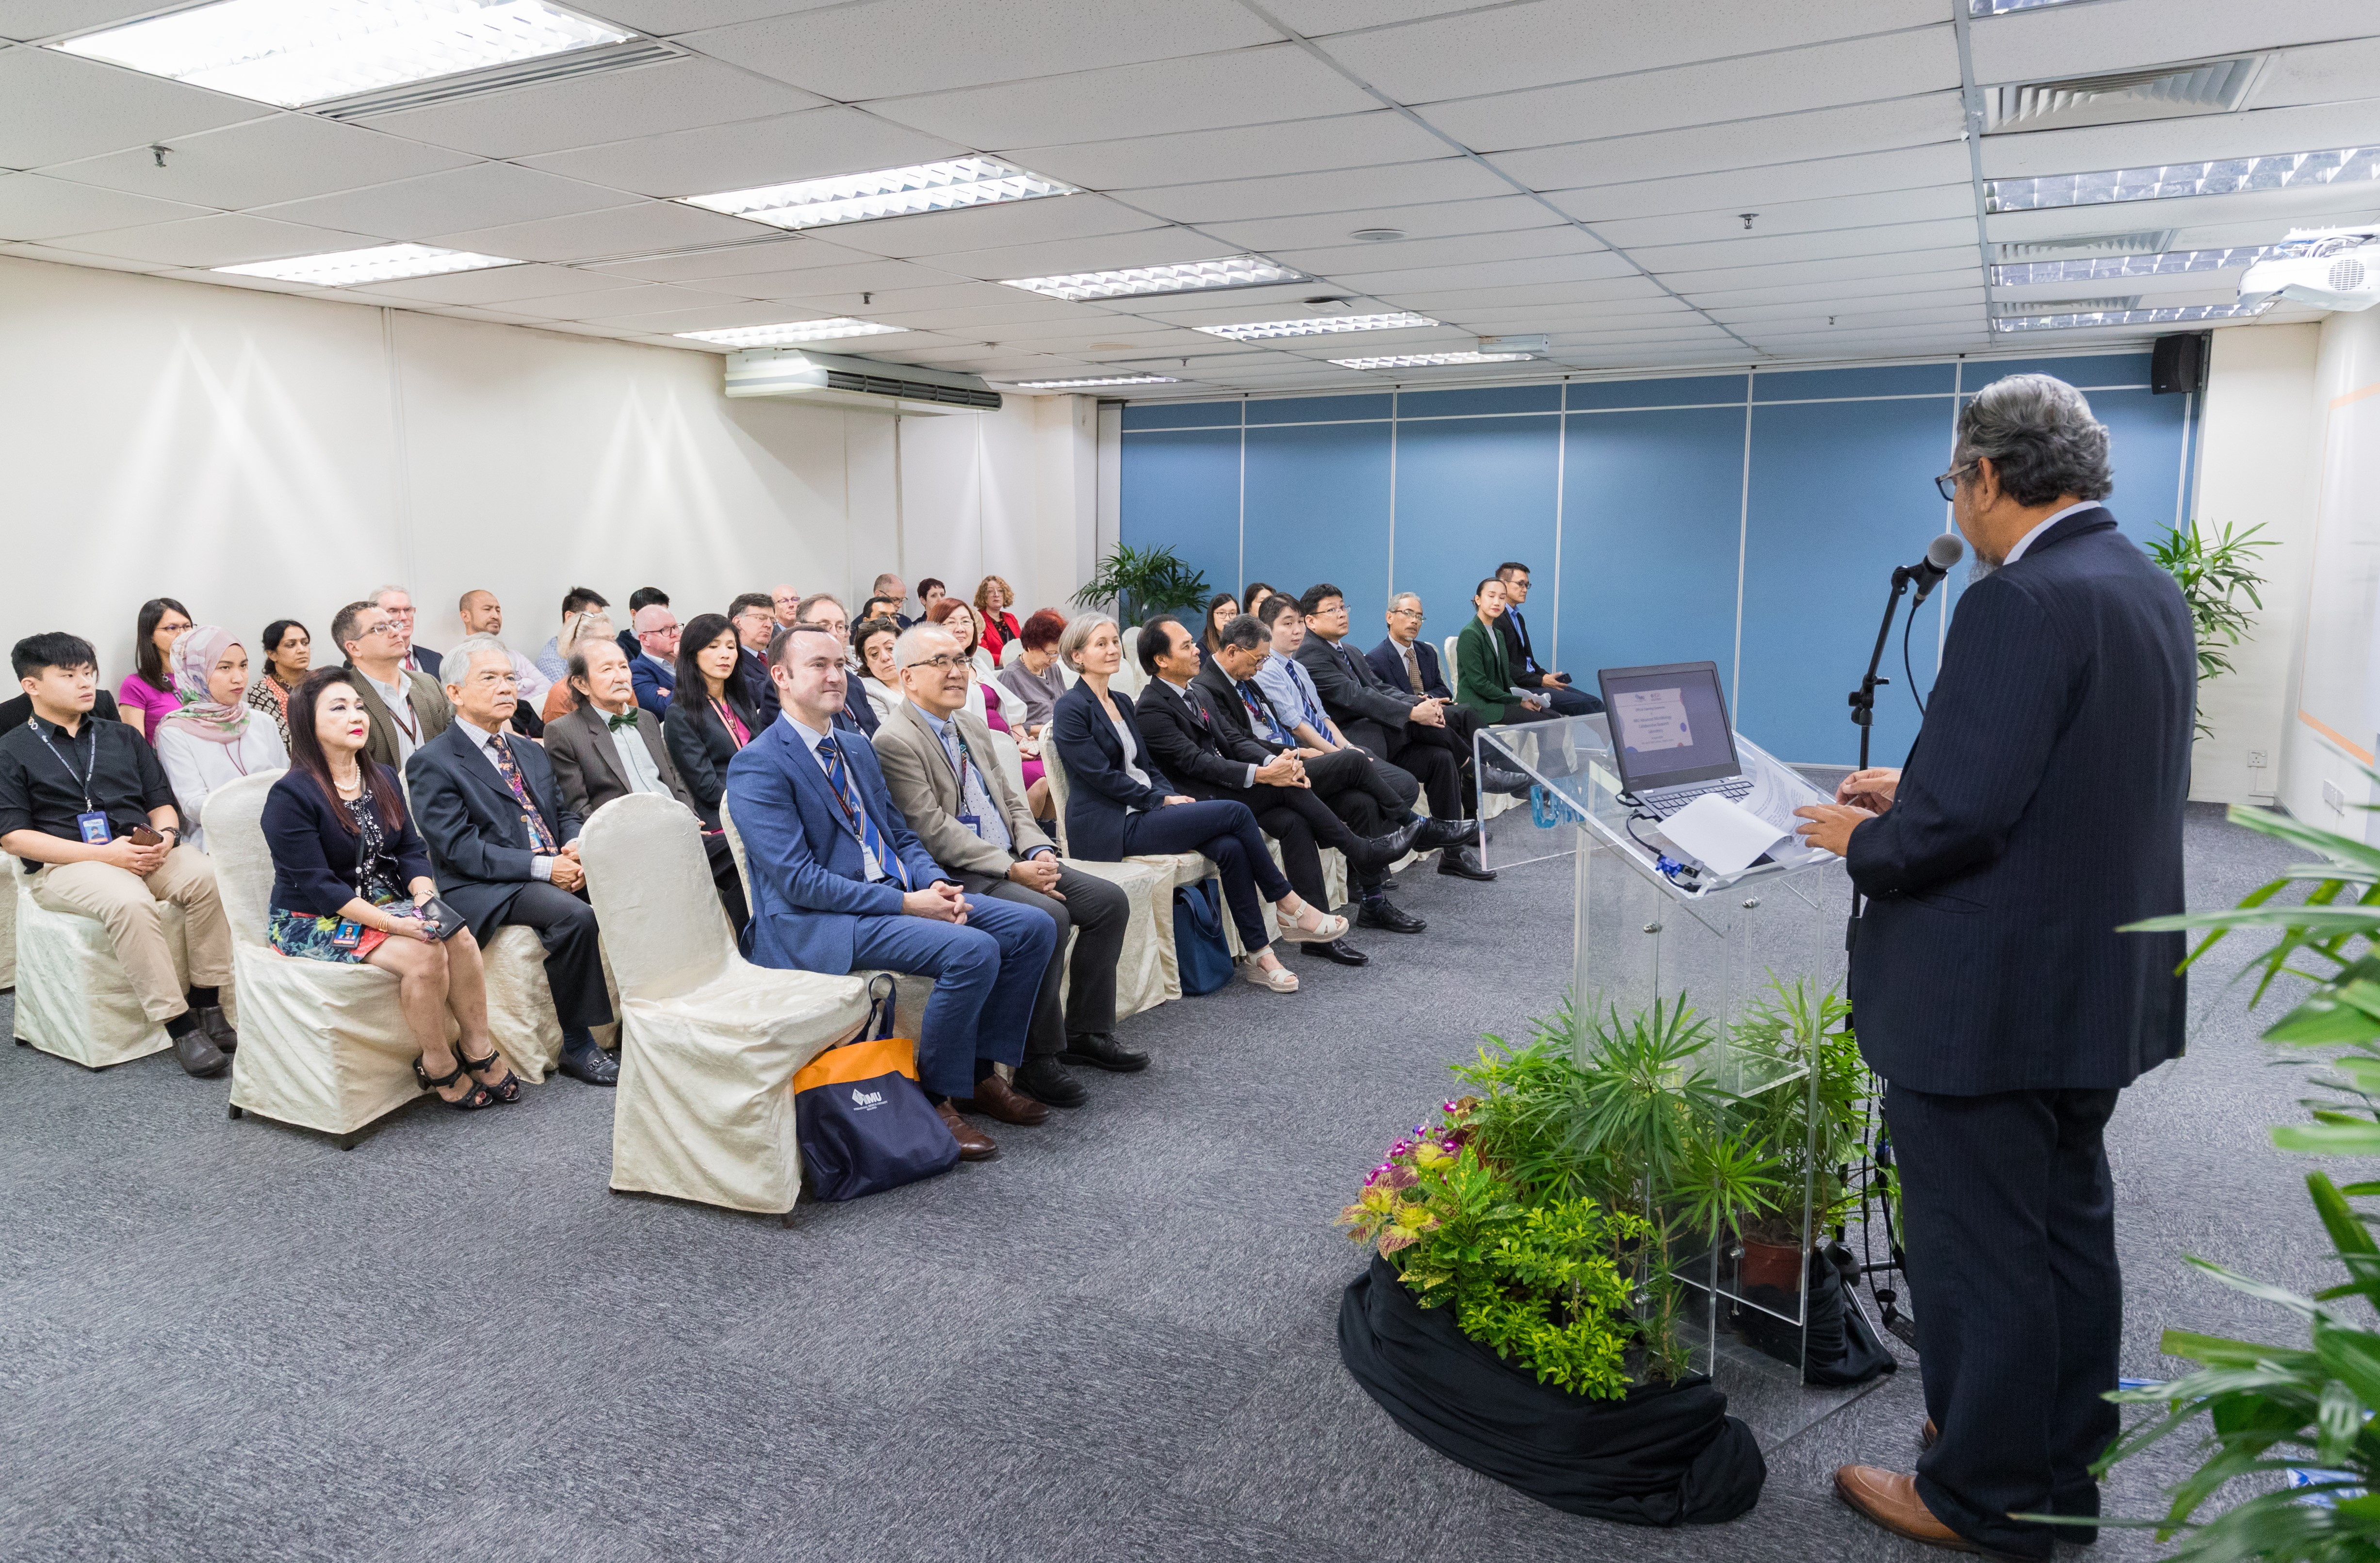 An IMU research facility to promote stronger research collaboration and technology transfer between Malaysia and international partners